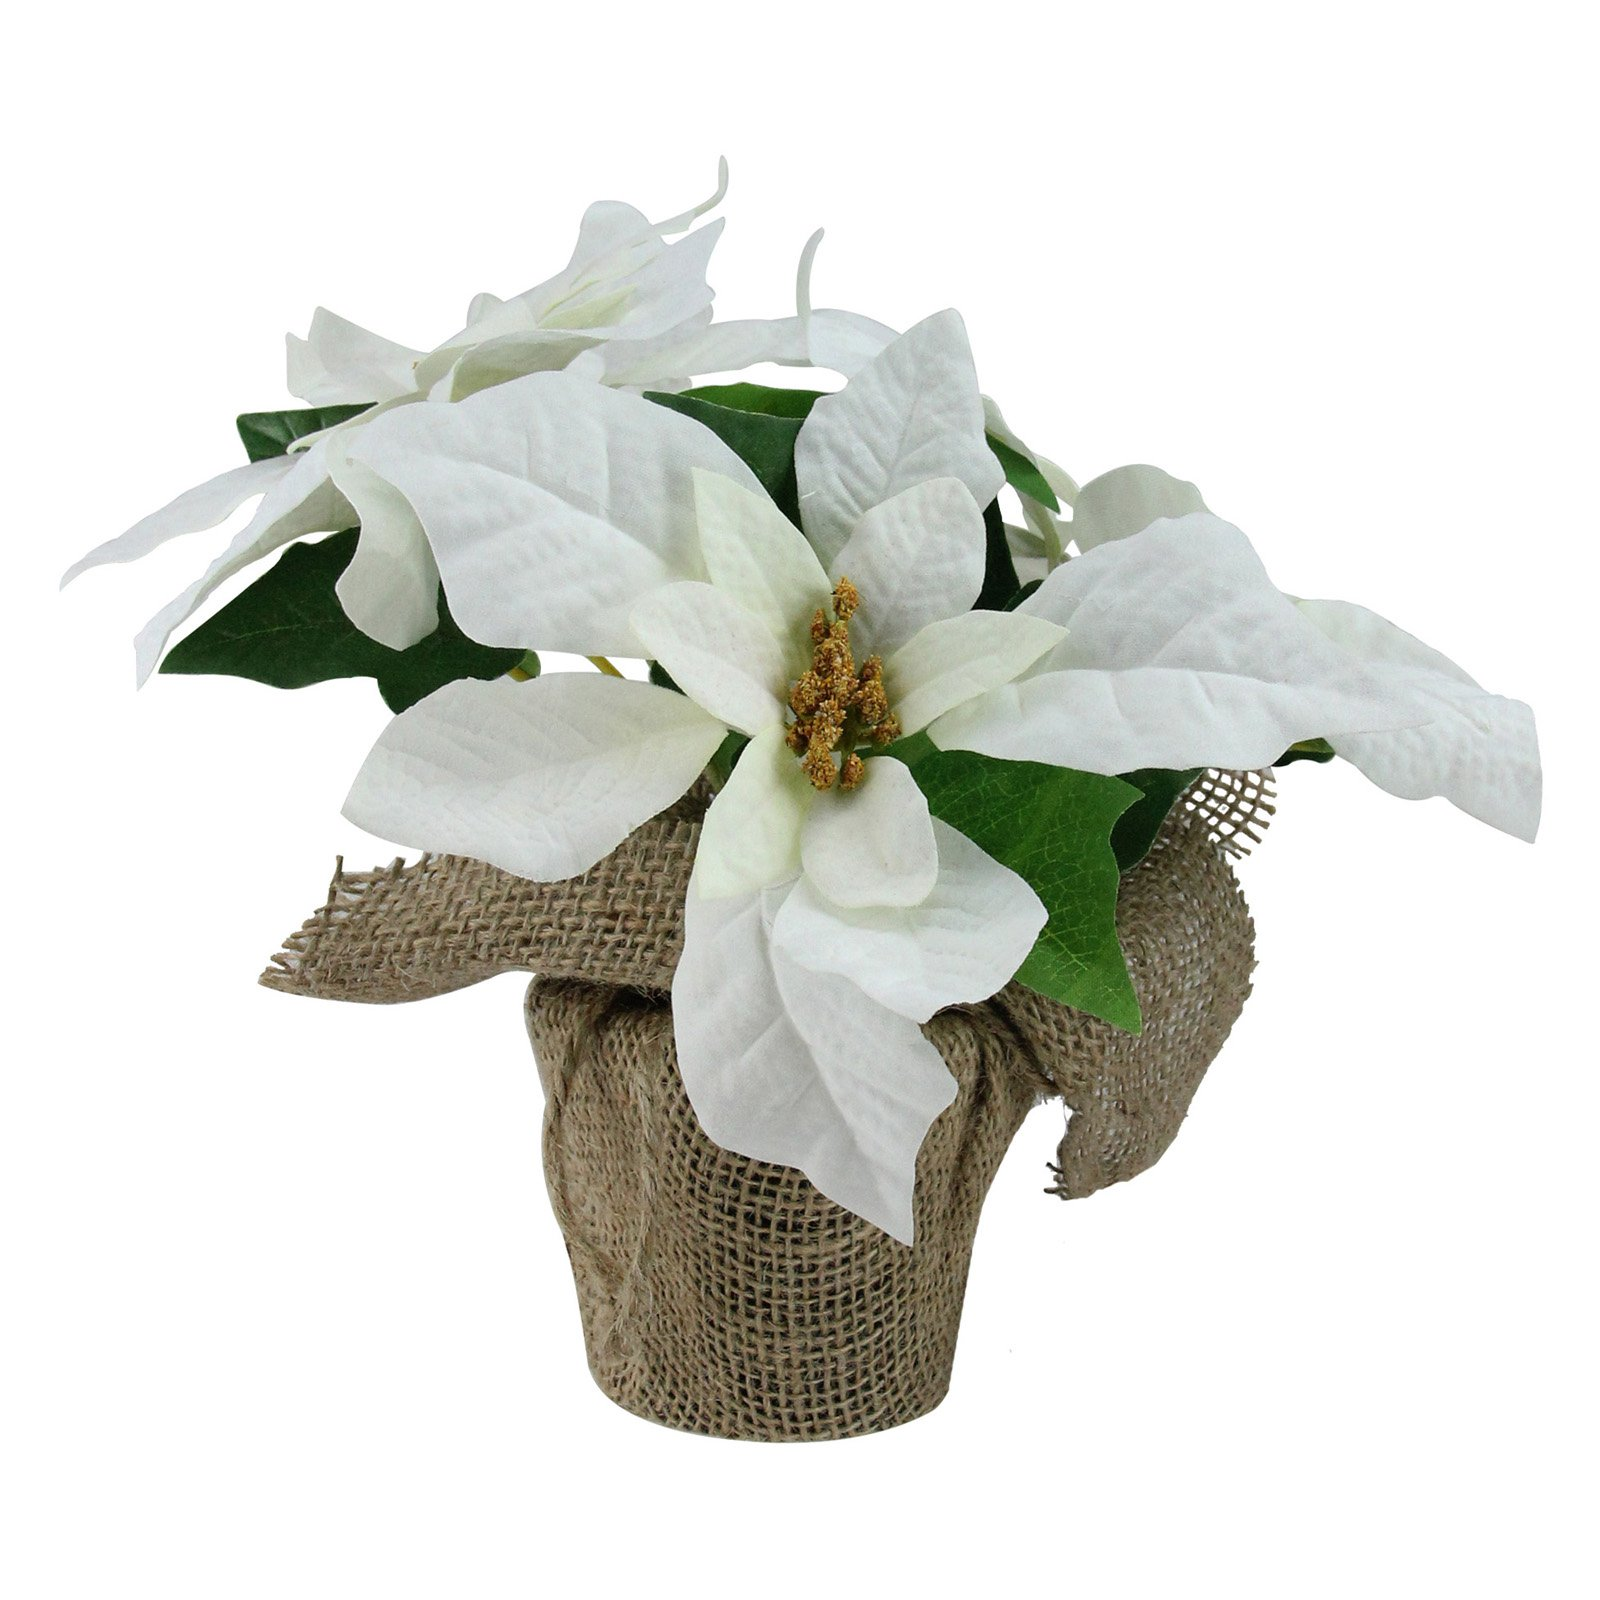 Northlight White Artificial Christmas Poinsettia Flower